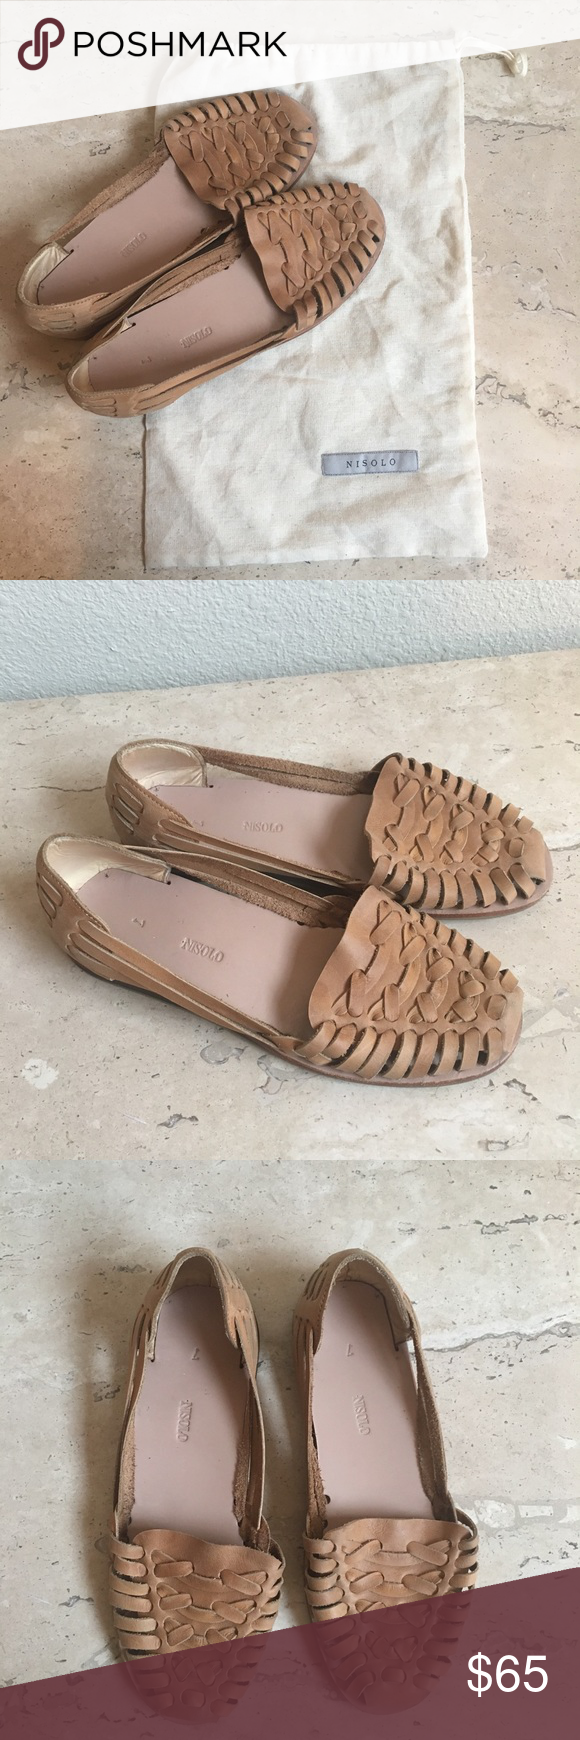 """0e220c0cb9b0 Nisolo """"Ecuador Huarache Sandal"""" in tan leather Nisolo """"Ecuador Huarache  Sandal"""" woven loafers in tan leather - worn only once and in like new  condition ..."""